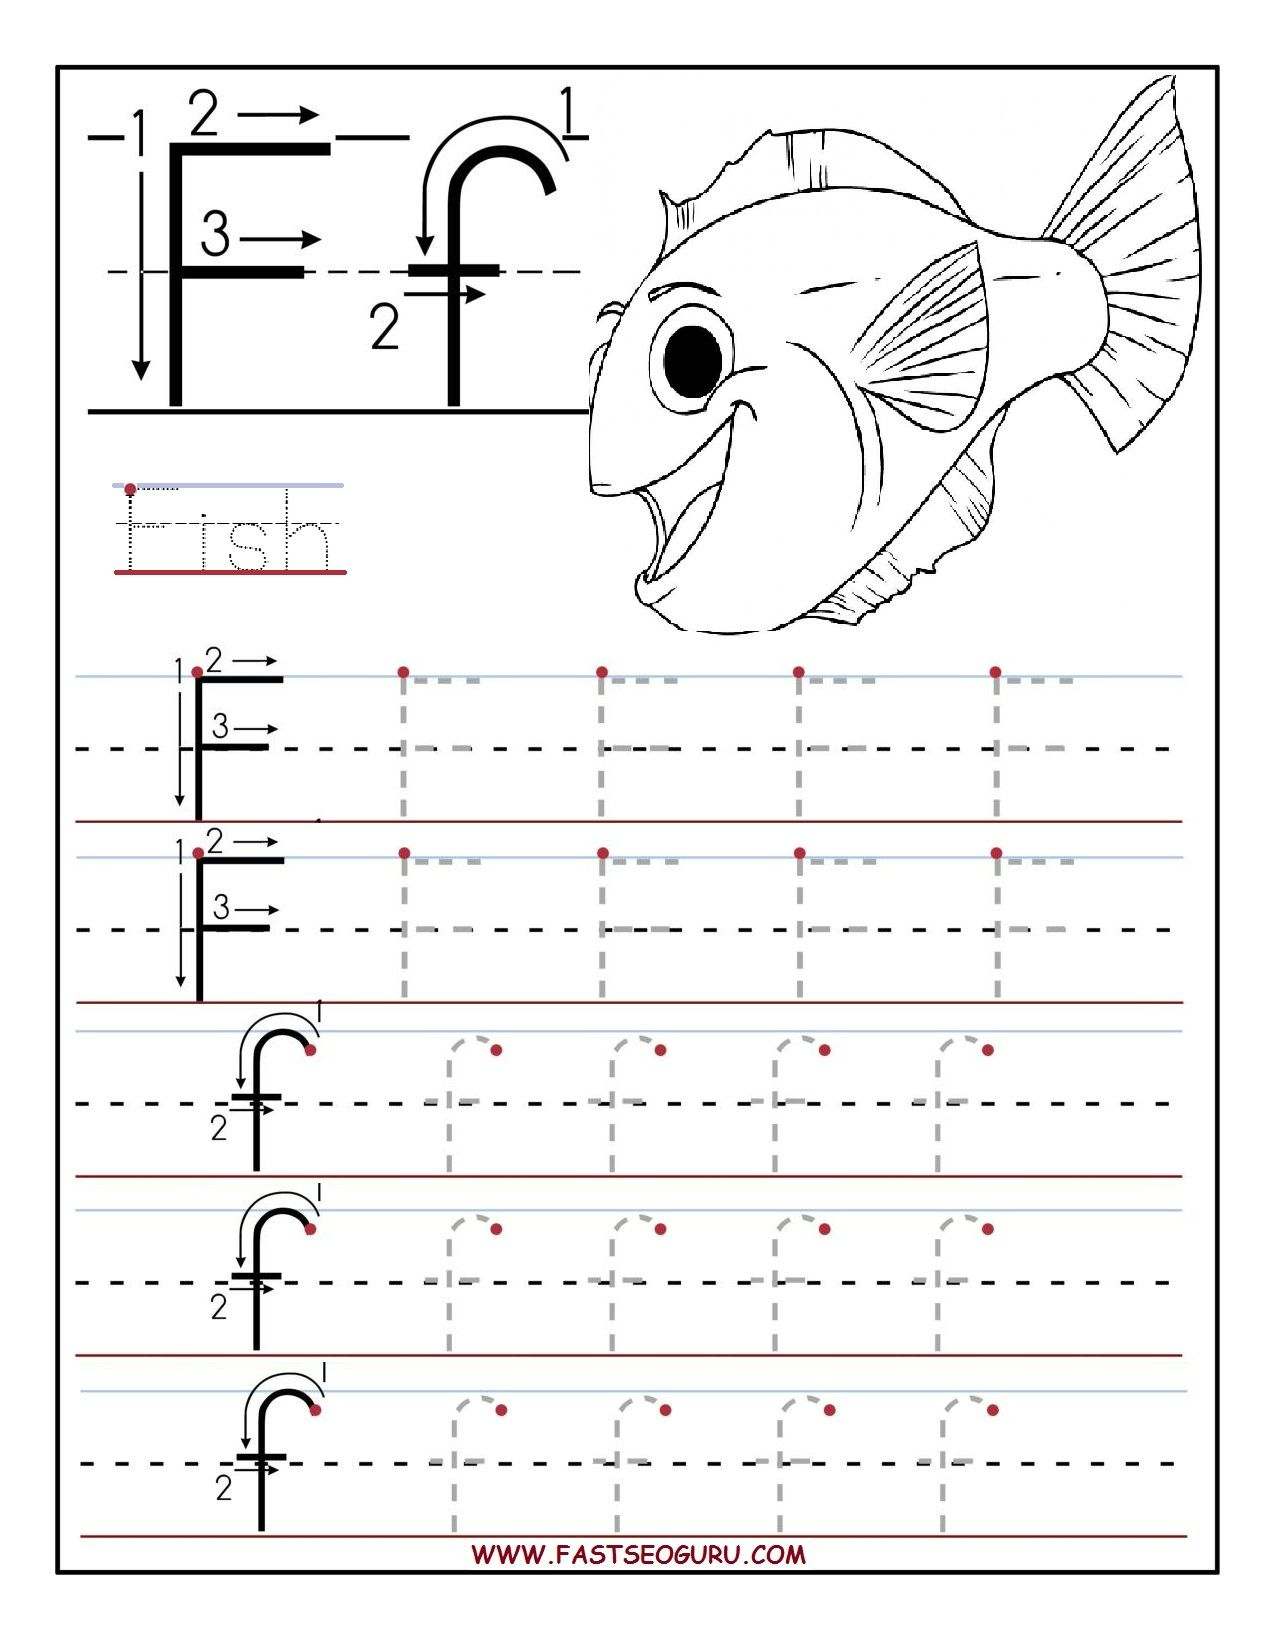 Printable Letter F Tracing Worksheets For Preschool regarding Letter F Worksheets For Toddlers